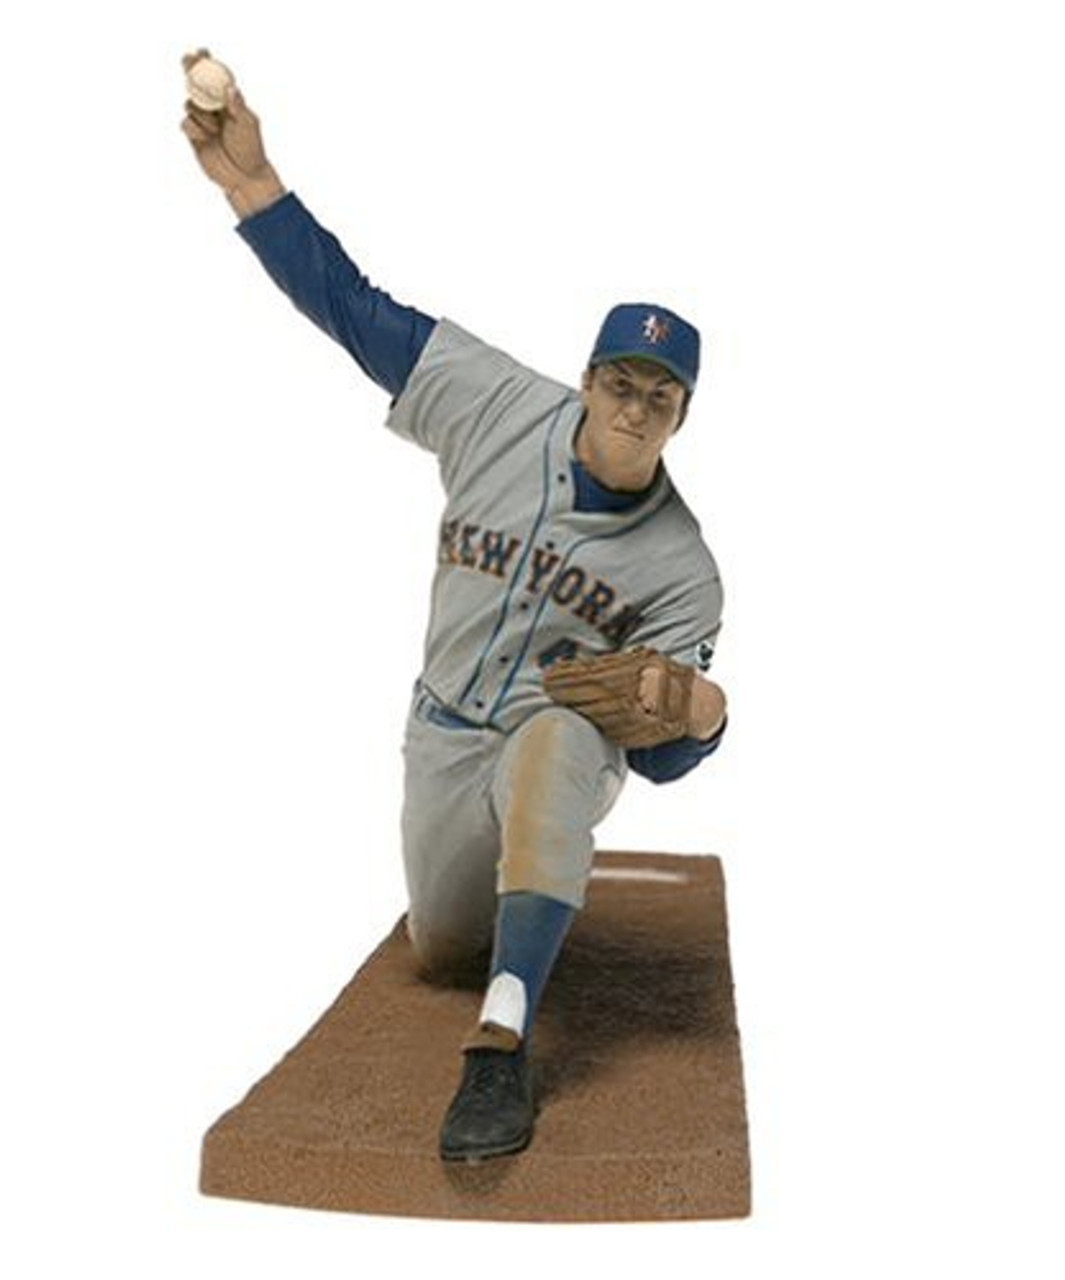 McFarlane Toys MLB Cooperstown Collection Series 1 Tom Seaver (New York Mets) Action Figure [Gray Jersey]